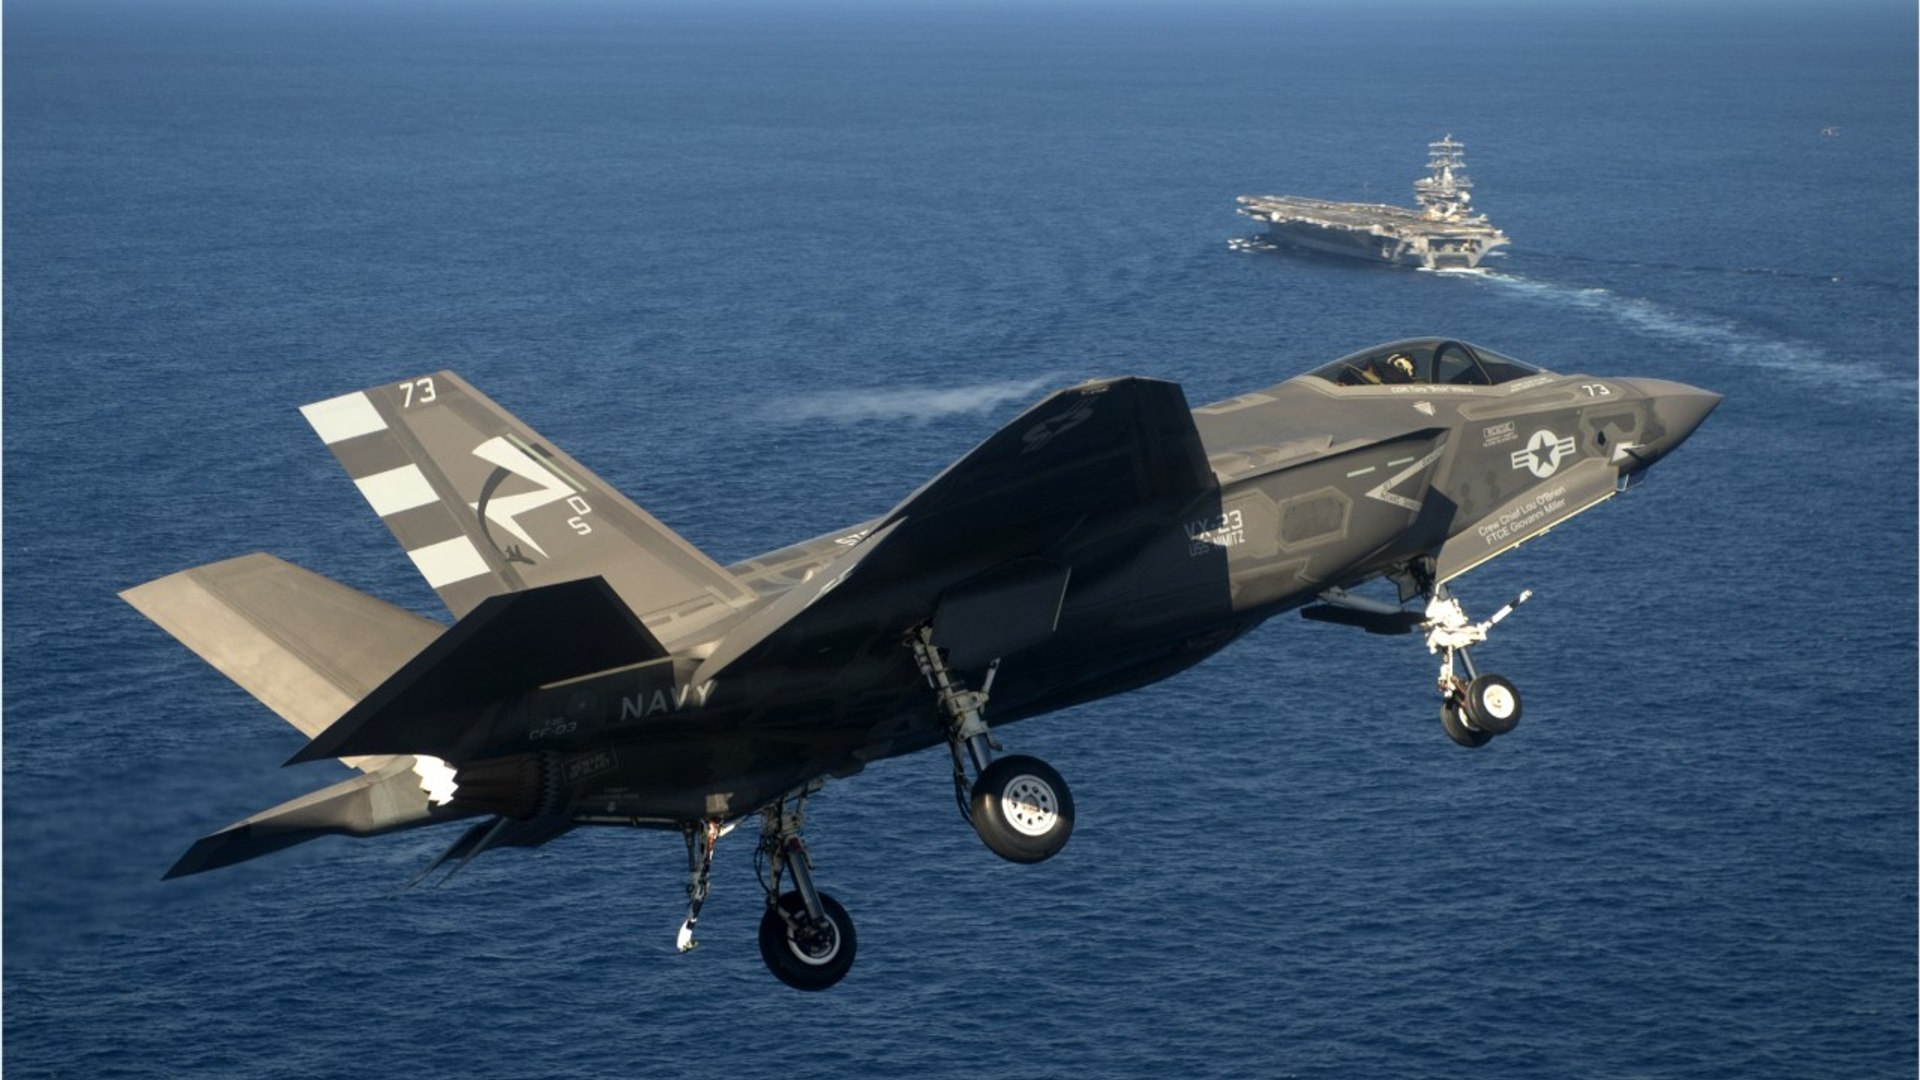 US Air Force's F-22, F-35 stealth fighters devastated by mother nature and freak accidents